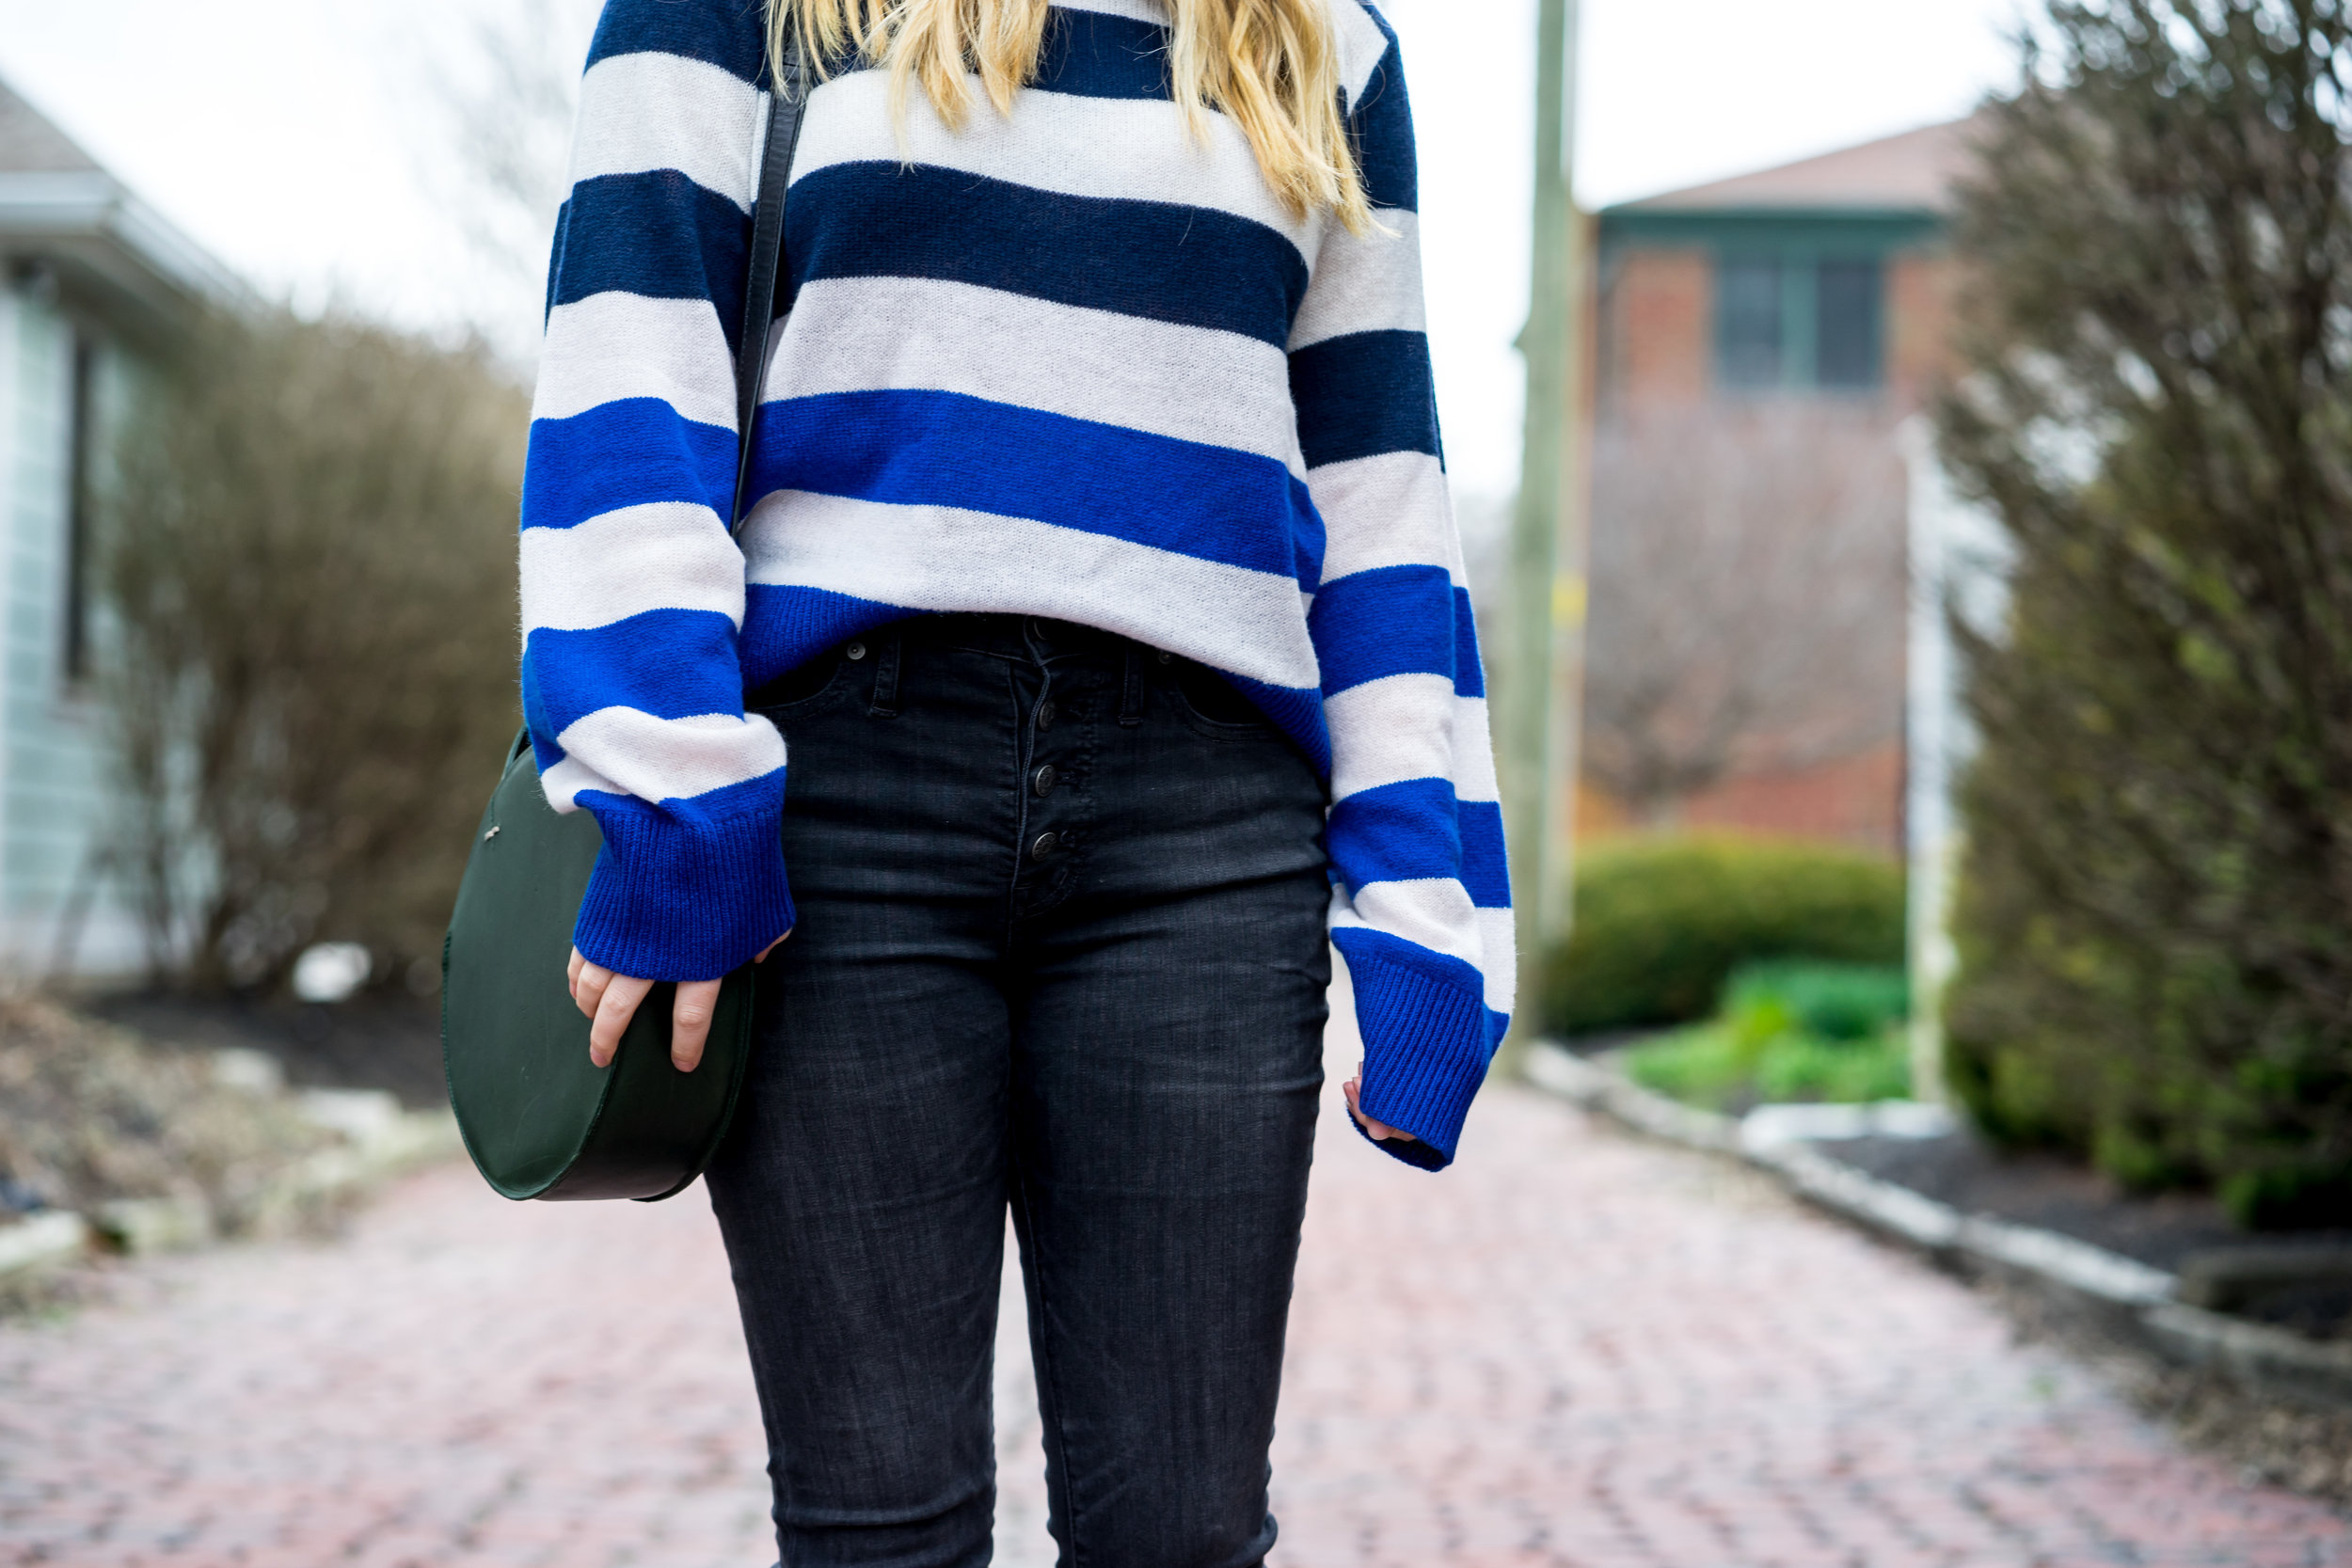 Maggie a la Mode - Yes You Can Wear Cropped Bootcut Jeans Madewell Cali Demi Boot-2.jpg